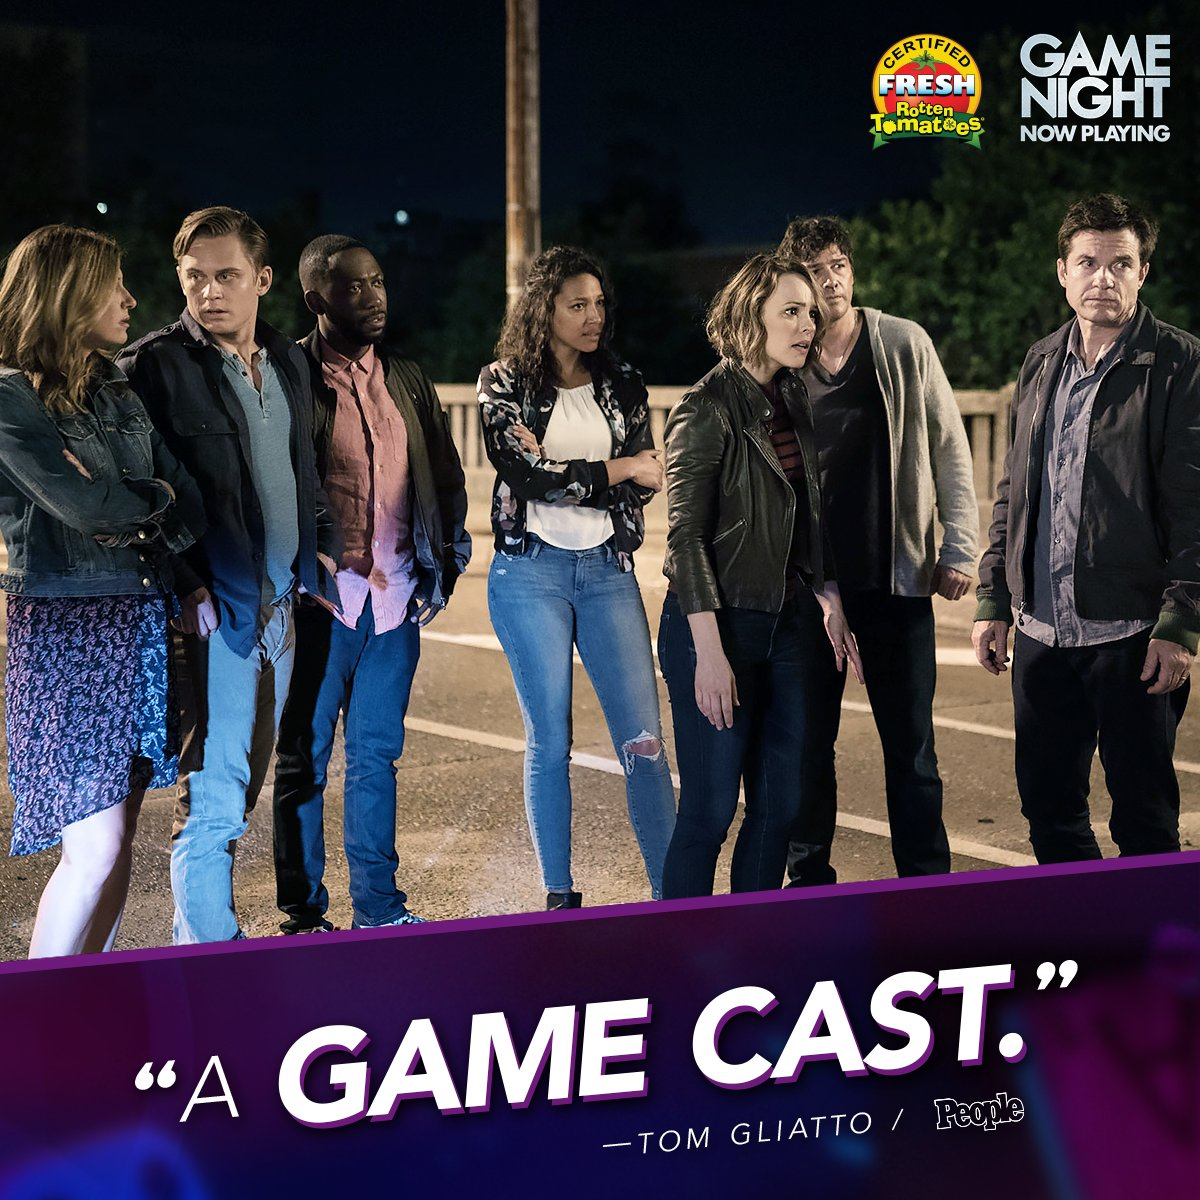 Game Night On Twitter Don T Miss The Incredible Cast Of